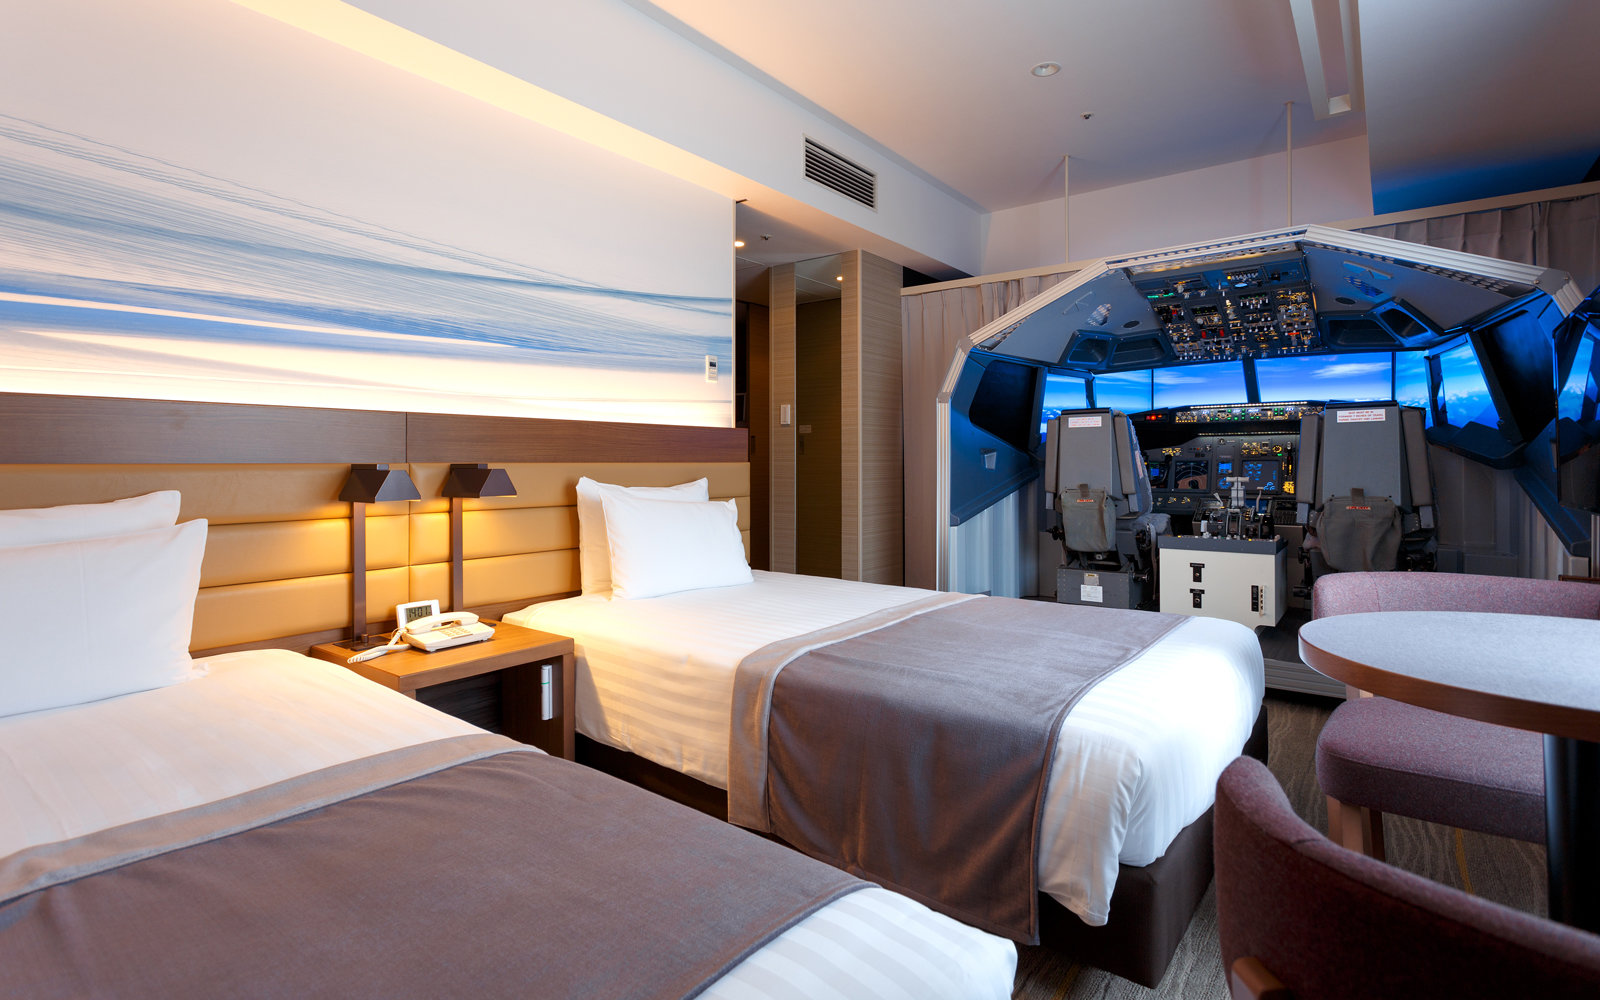 This Hotel Room Has Its Own Boeing 737 Flight Simulator